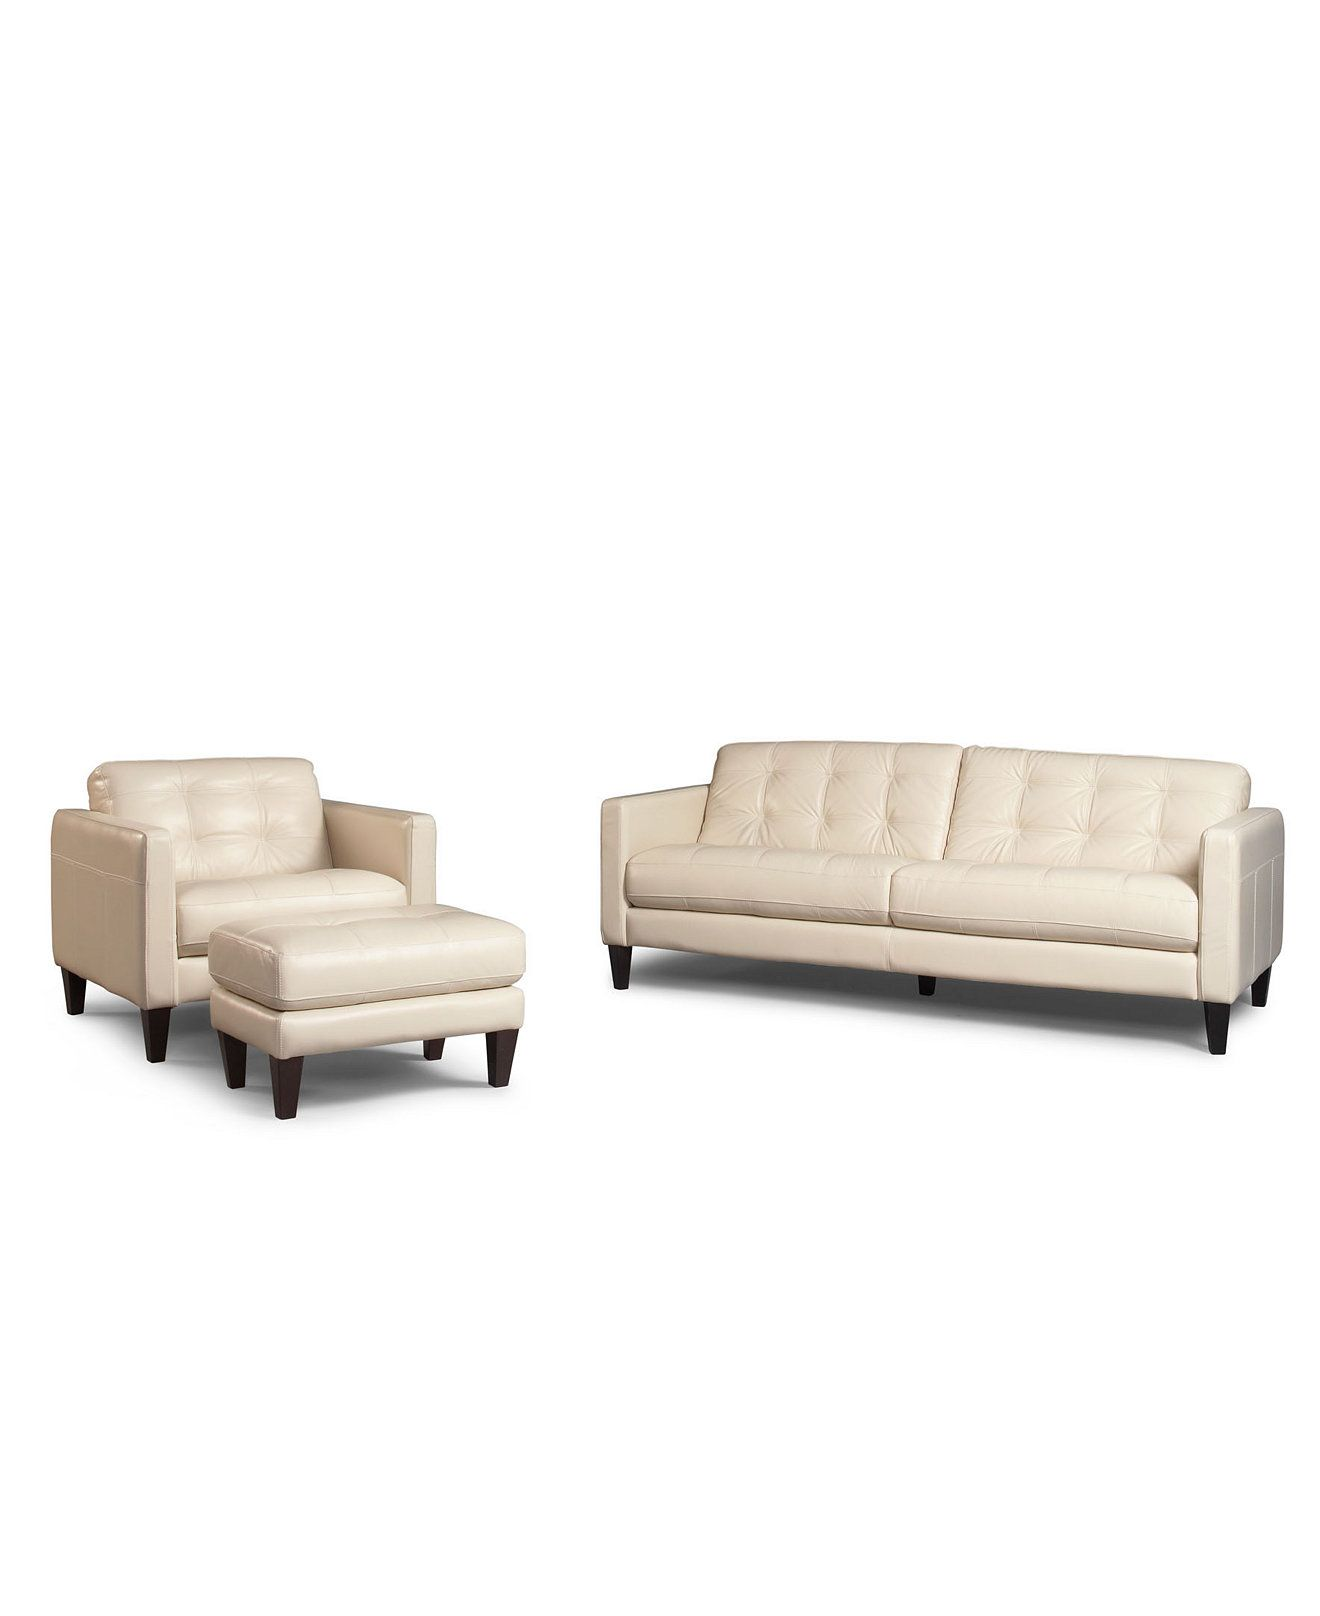 Fabulous Milan 3 Piece Leather Sofa Set Sofa Chair And Ottoman Download Free Architecture Designs Scobabritishbridgeorg